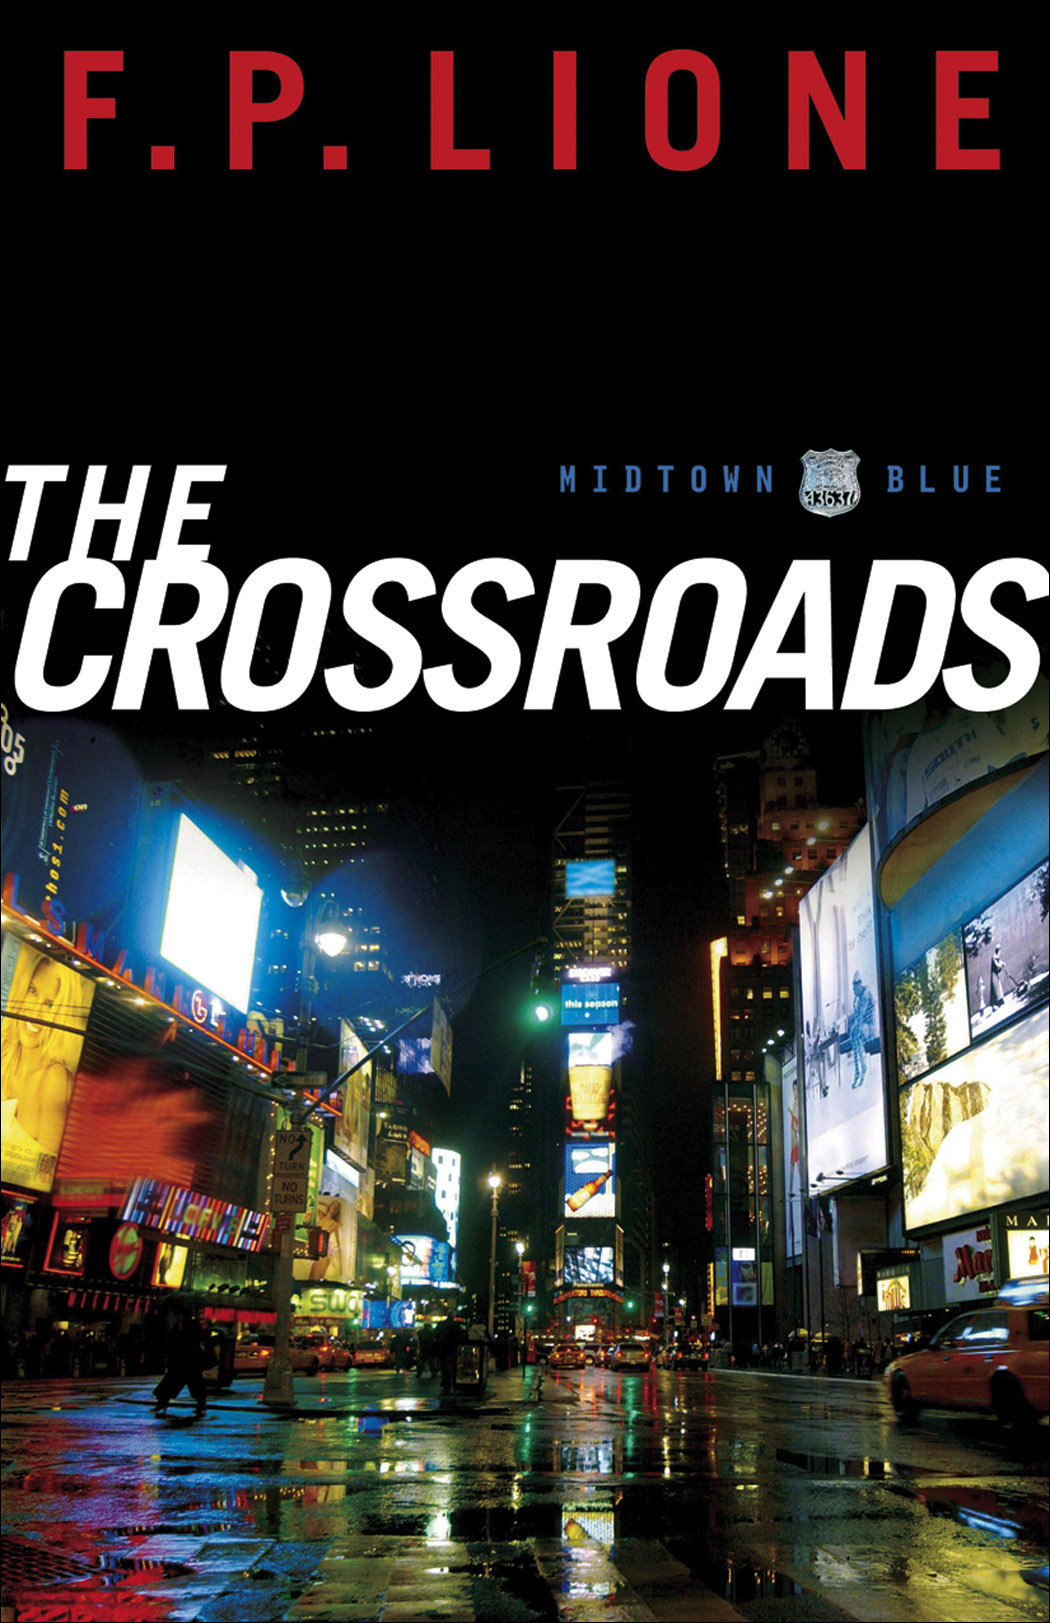 Crossroads, The (Midtown Blue Book #2)